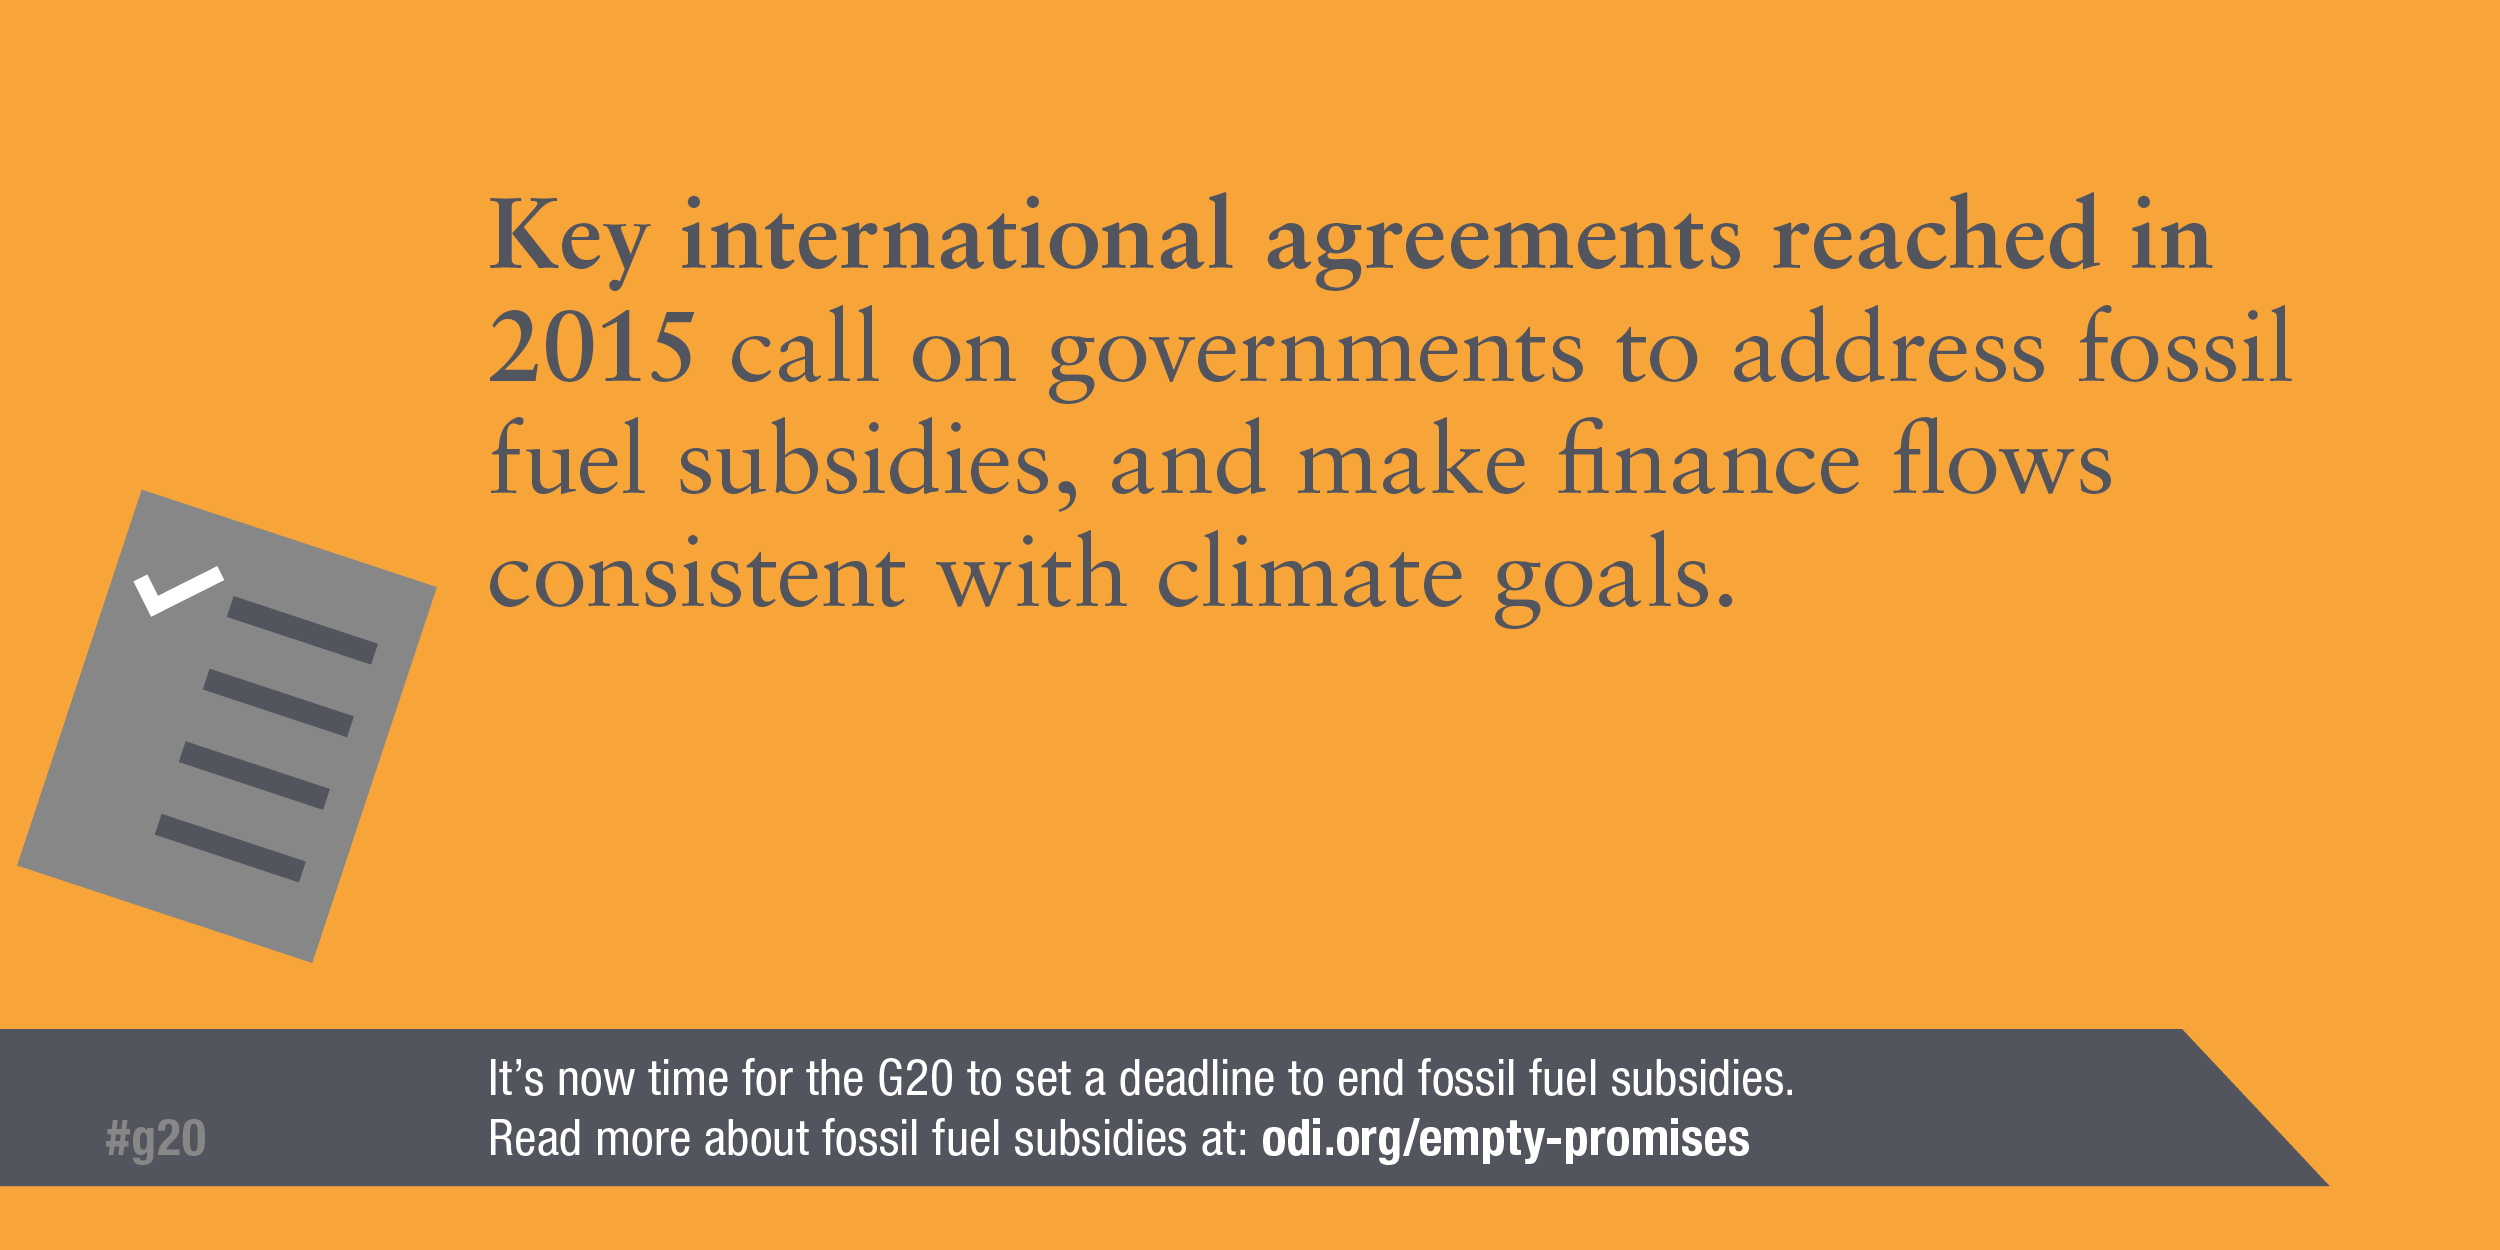 Infographic: International agreements in 2015 called on governments to address fossil fuel subsidies